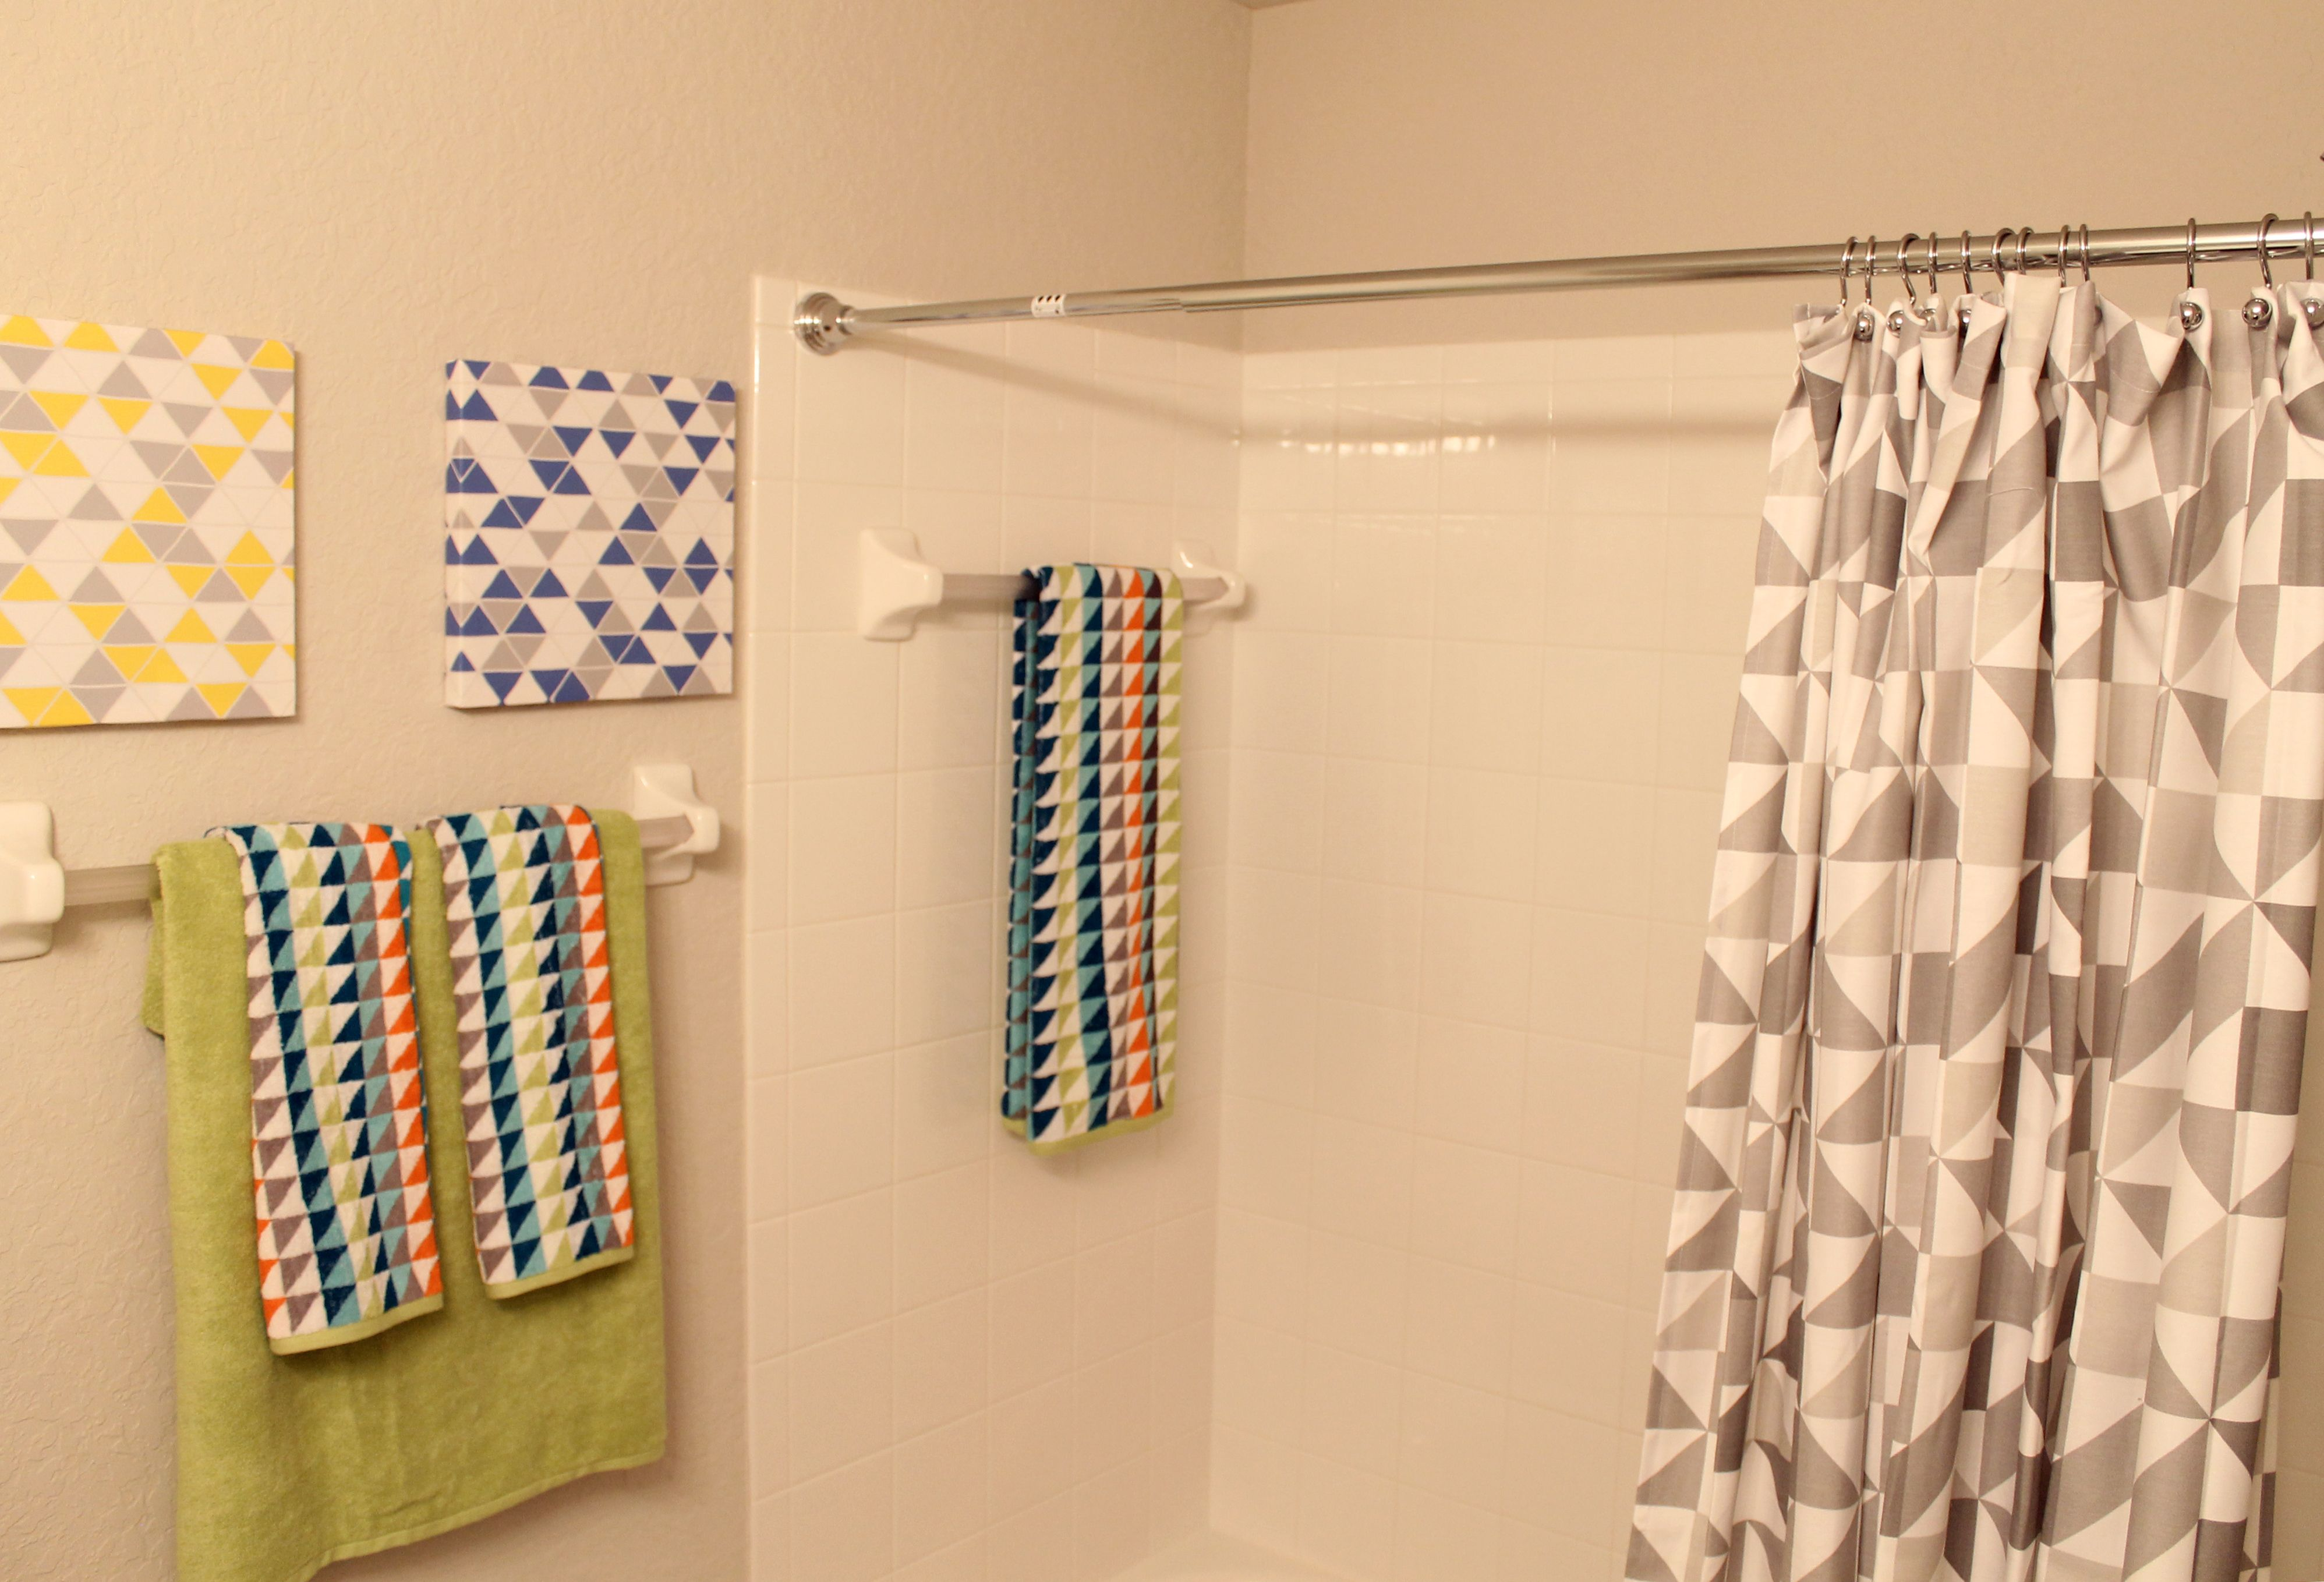 The decor in this bathroom embraces the popular geometric decor ...